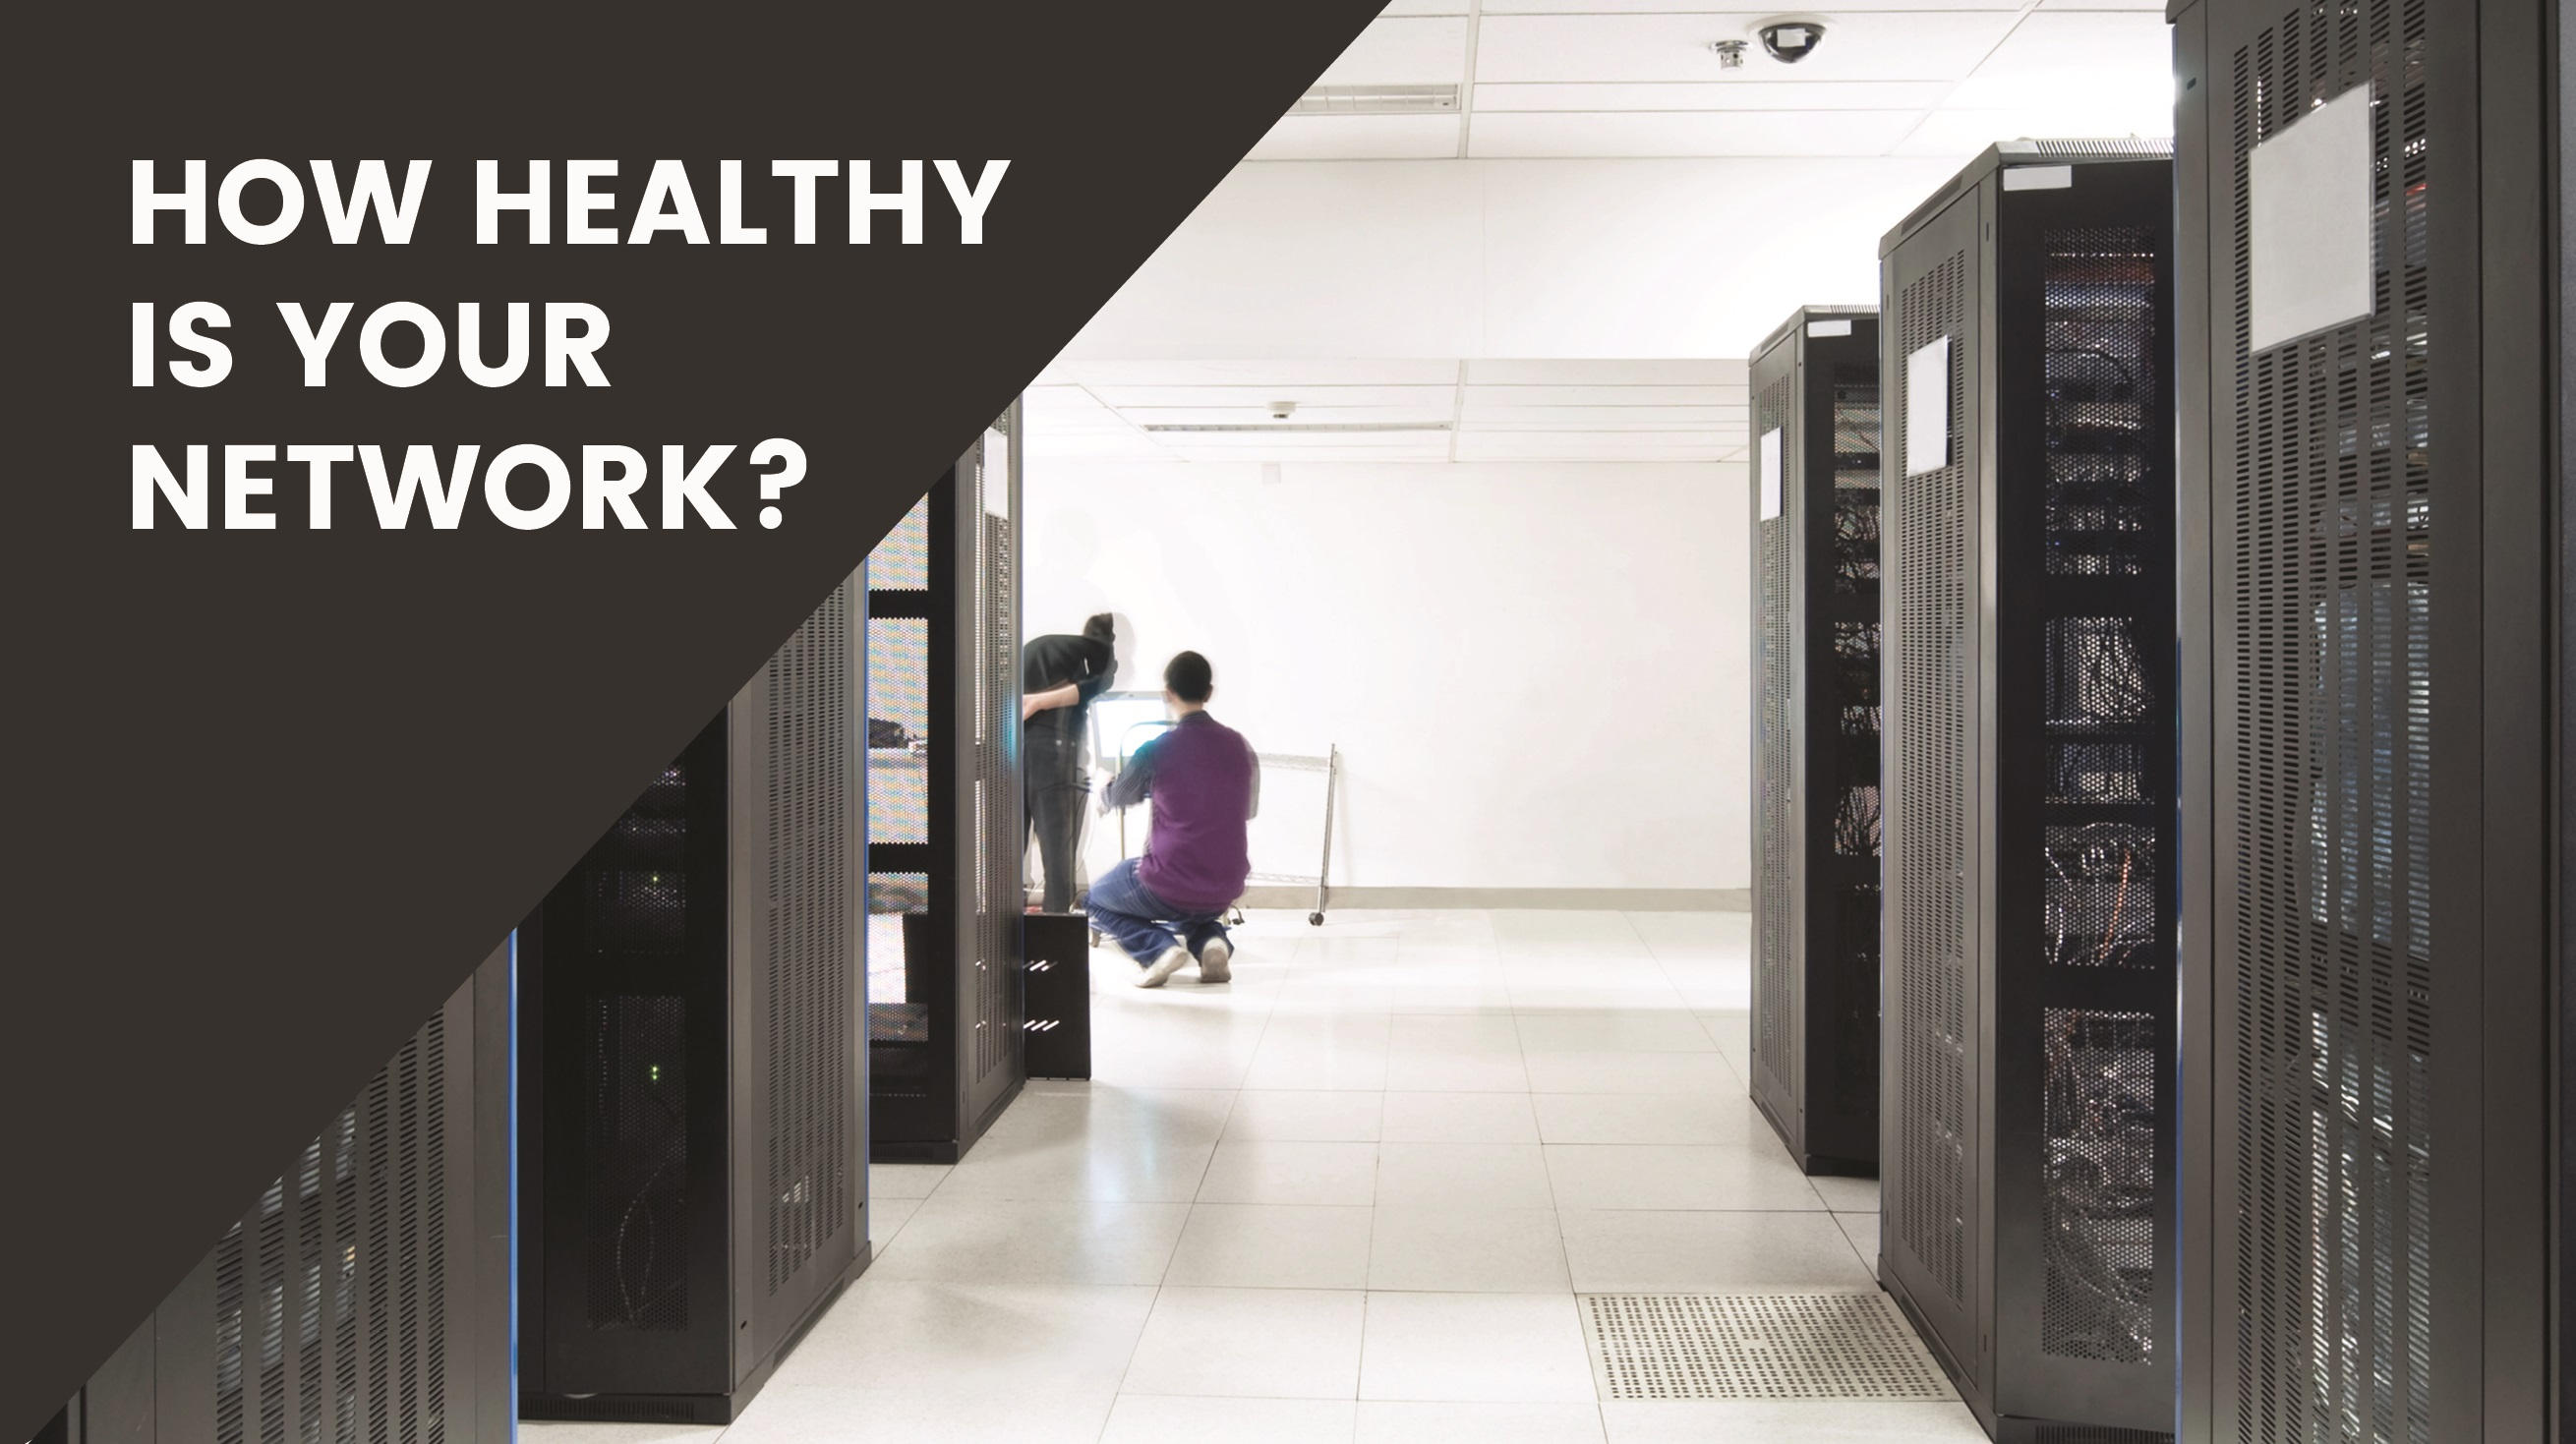 Network Performance and Health Survey